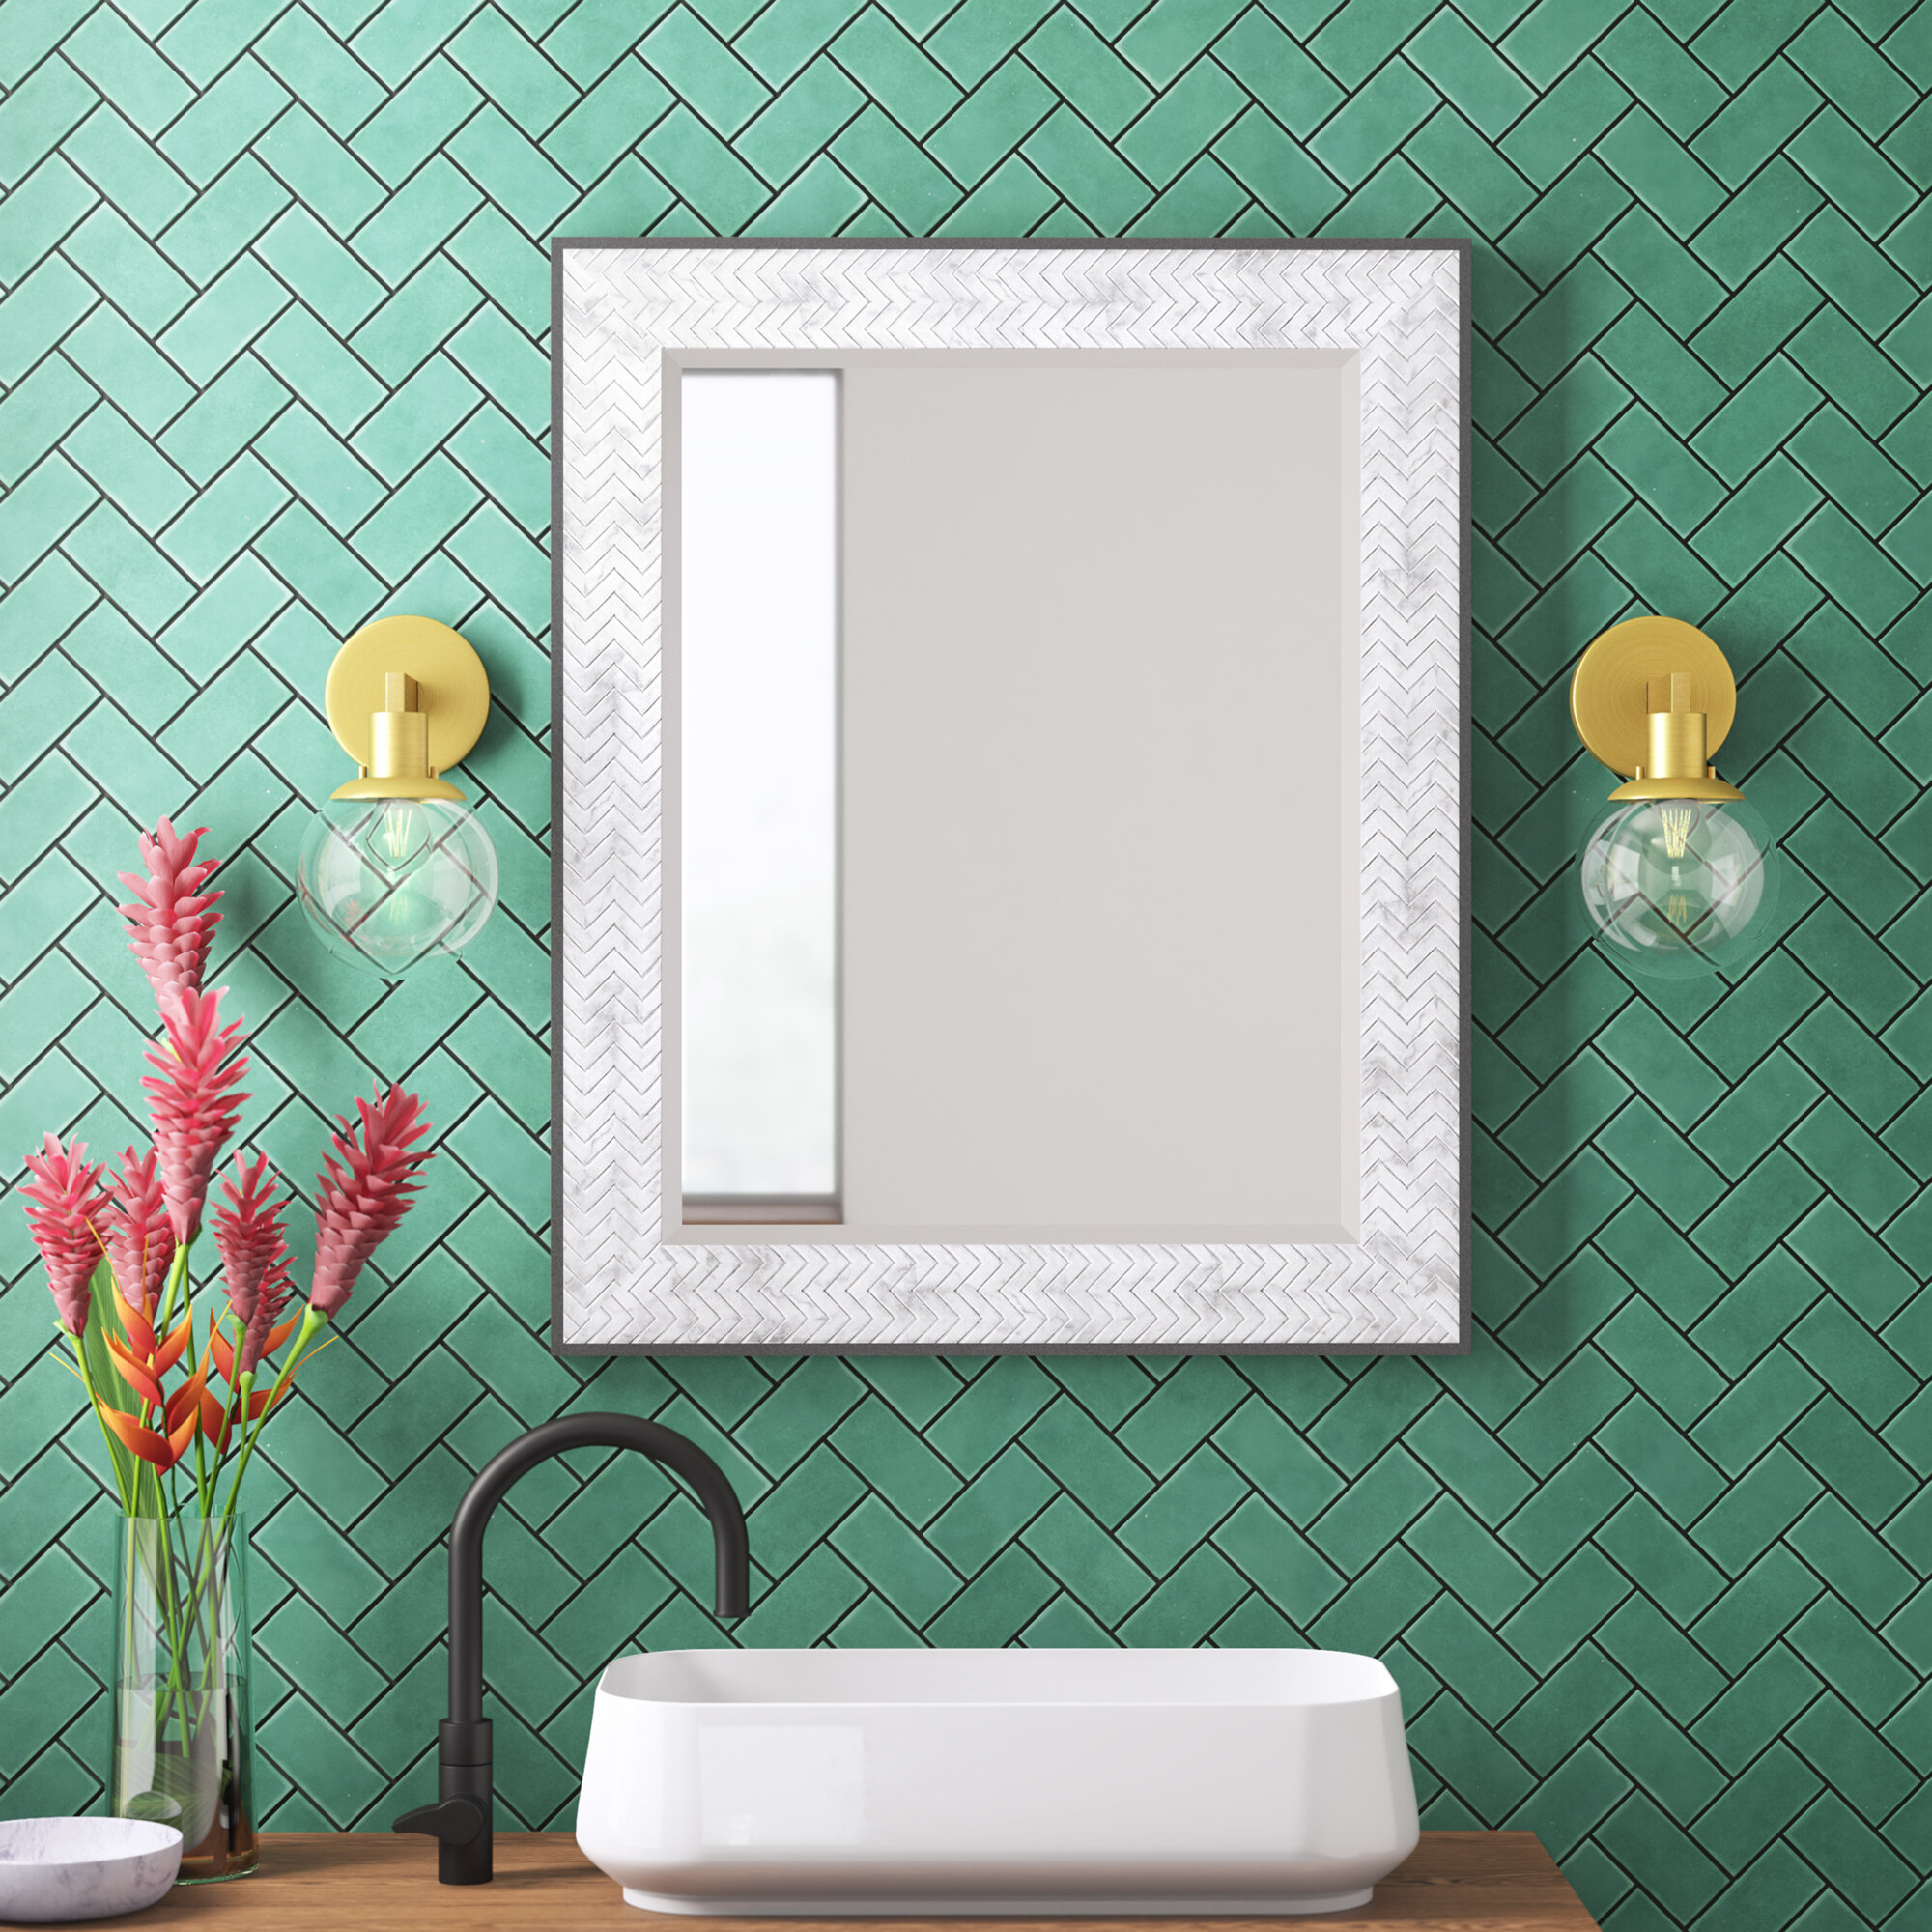 Powder Room All Mirrors Rh Modern Ma T Mirror Within Shildon Beveled Accent Mirrors (View 16 of 20)